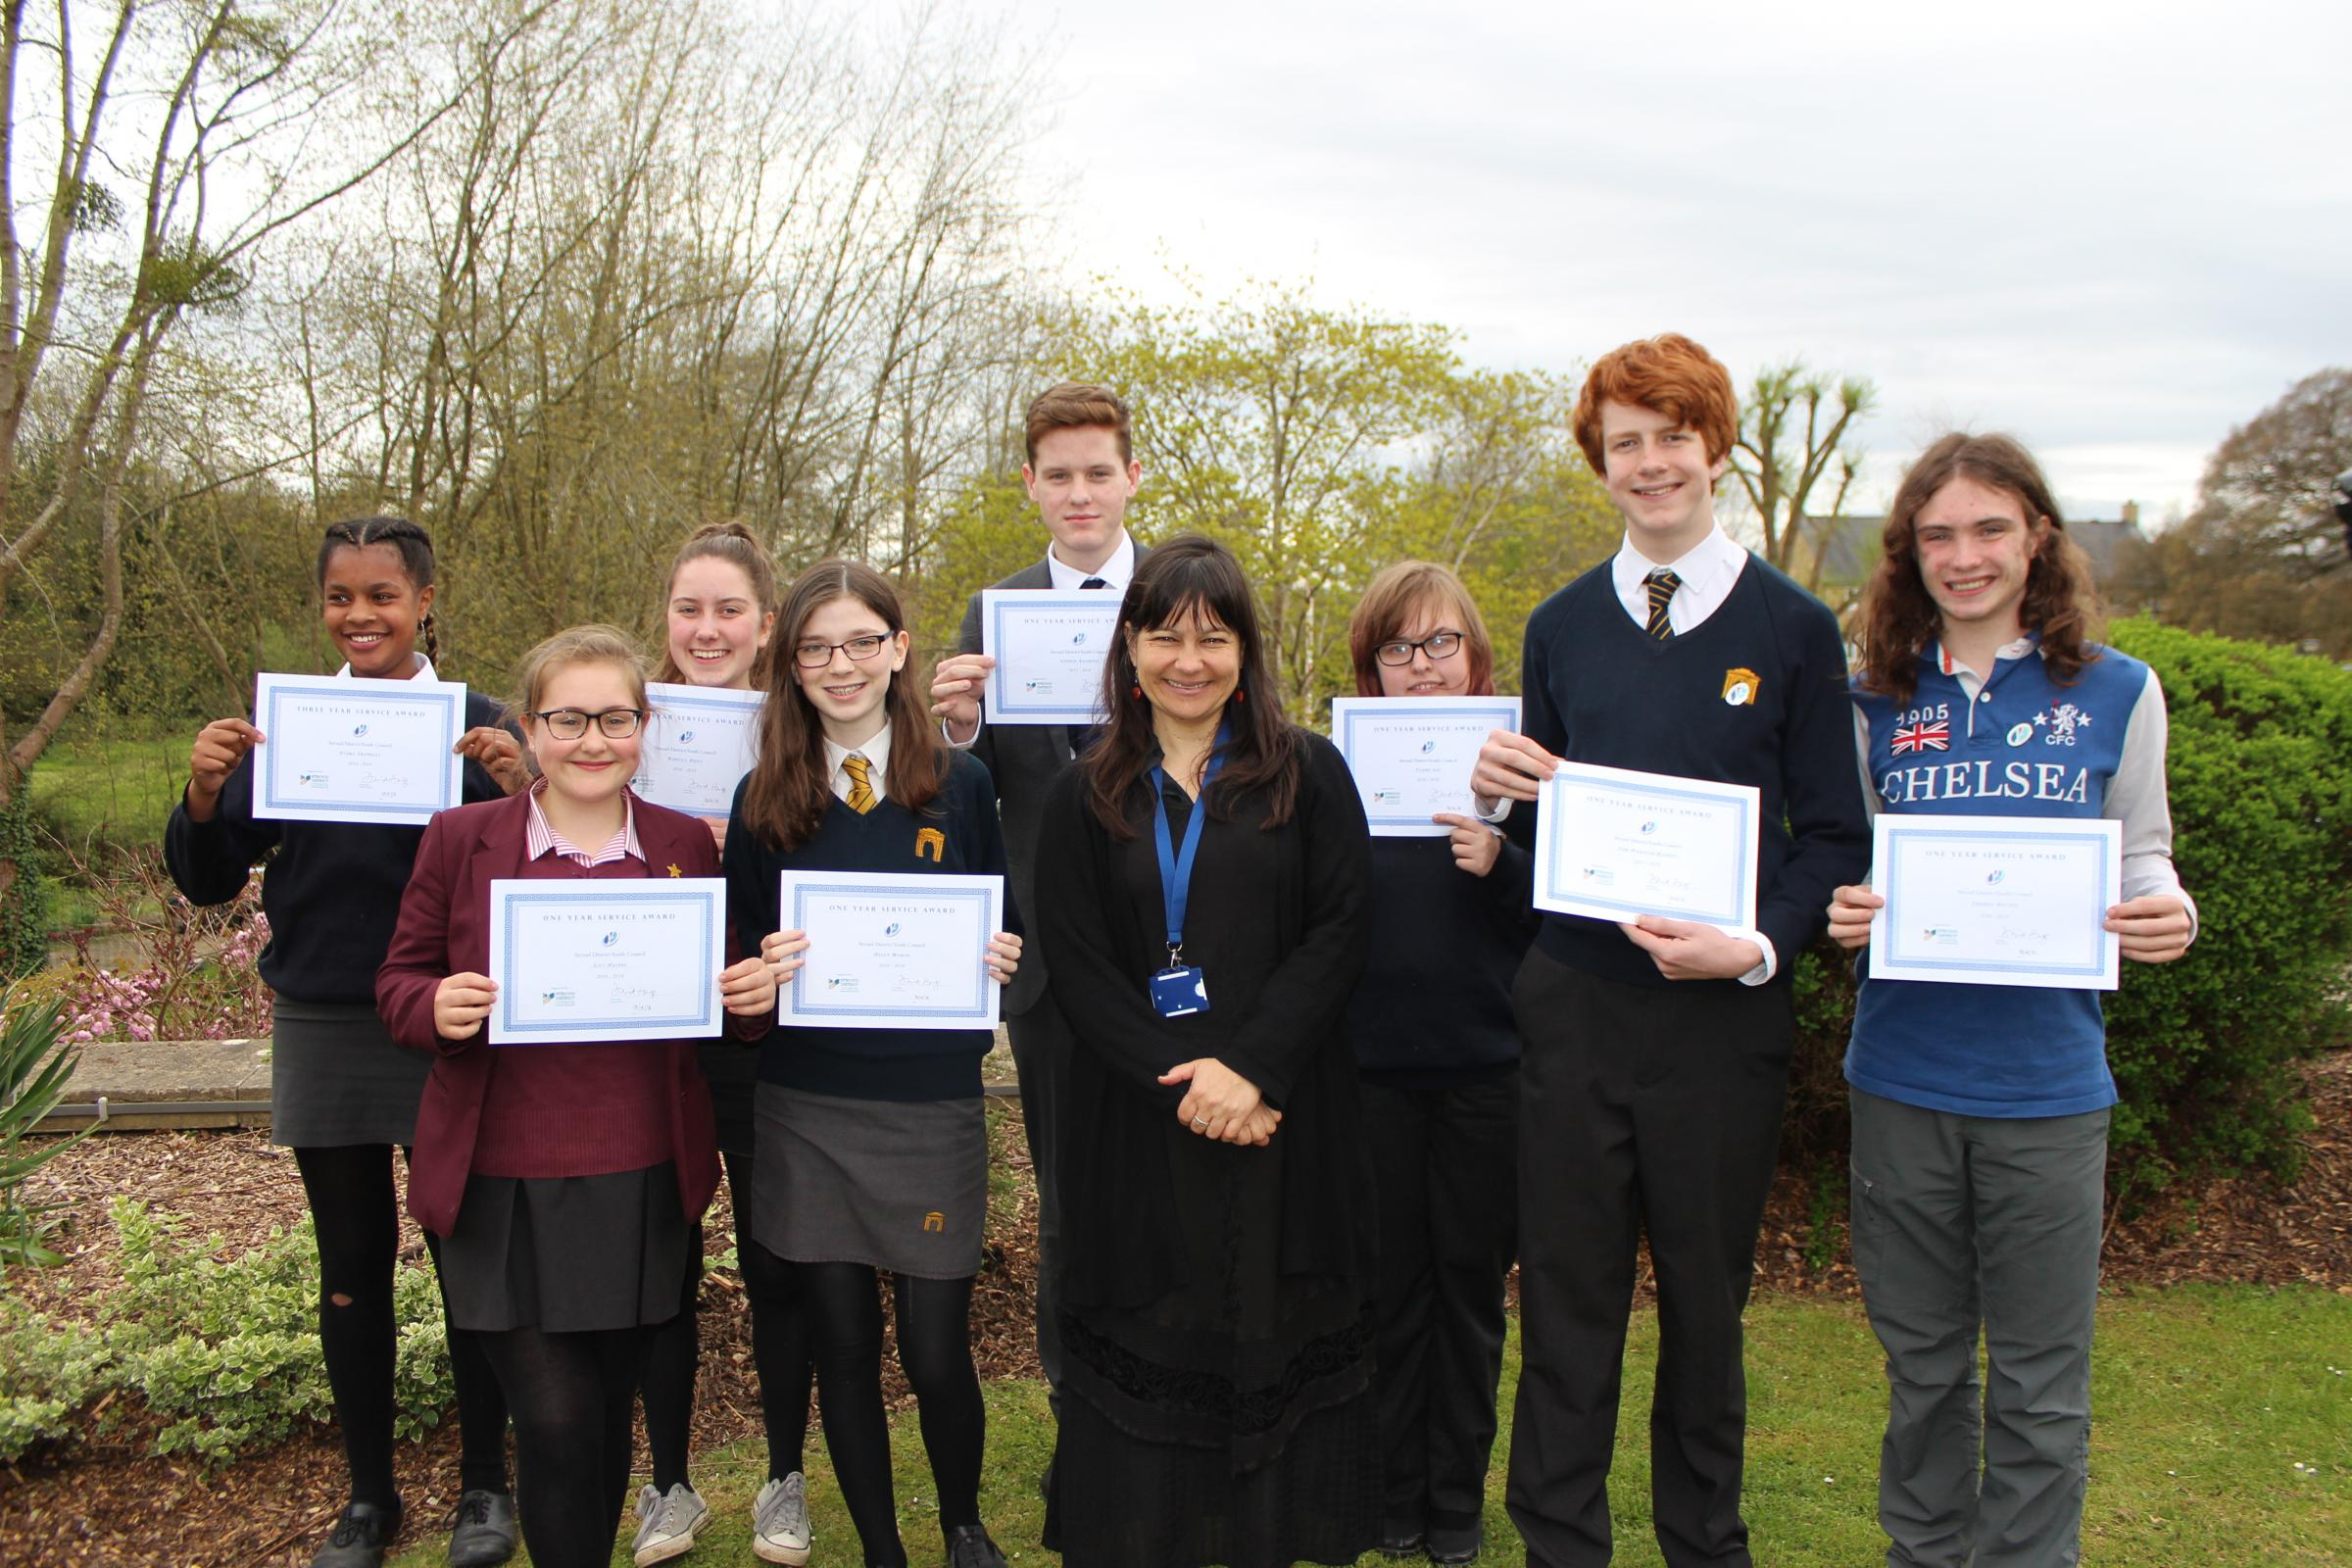 Members of Stroud District Youth Council were given awards by Stroud District Council leader Cllr Doina Cornell.